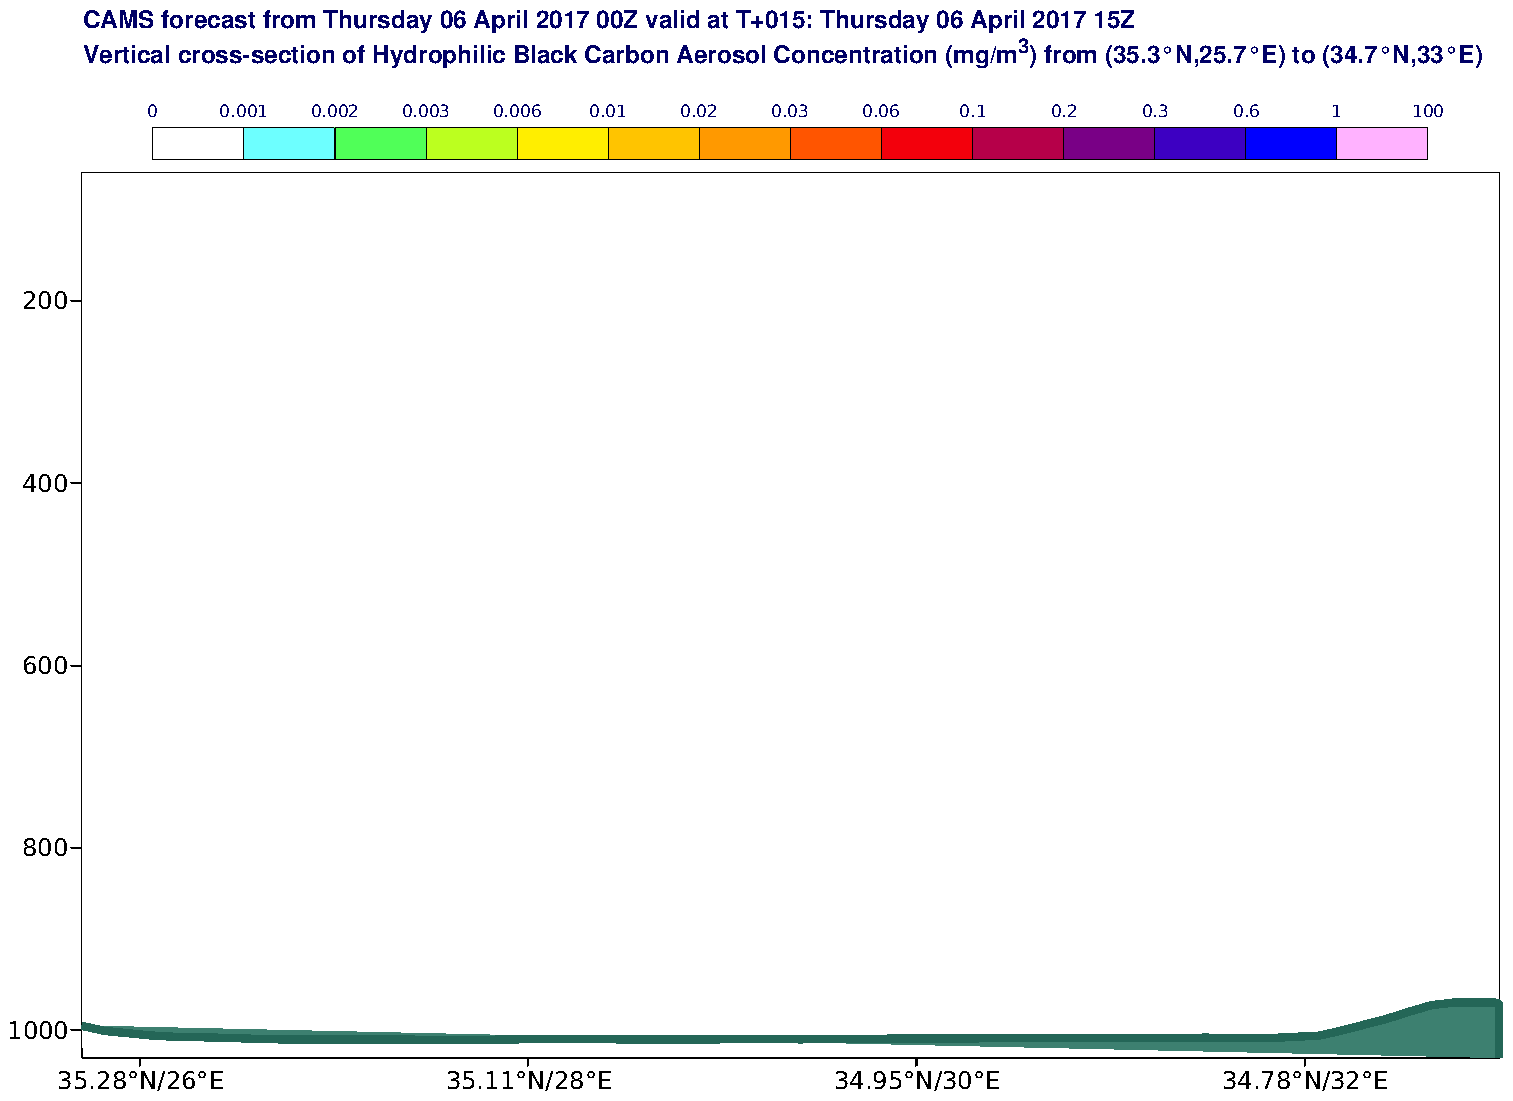 Vertical cross-section of Hydrophilic Black Carbon Aerosol Concentration (mg/m3) valid at T15 - 2017-04-06 15:00